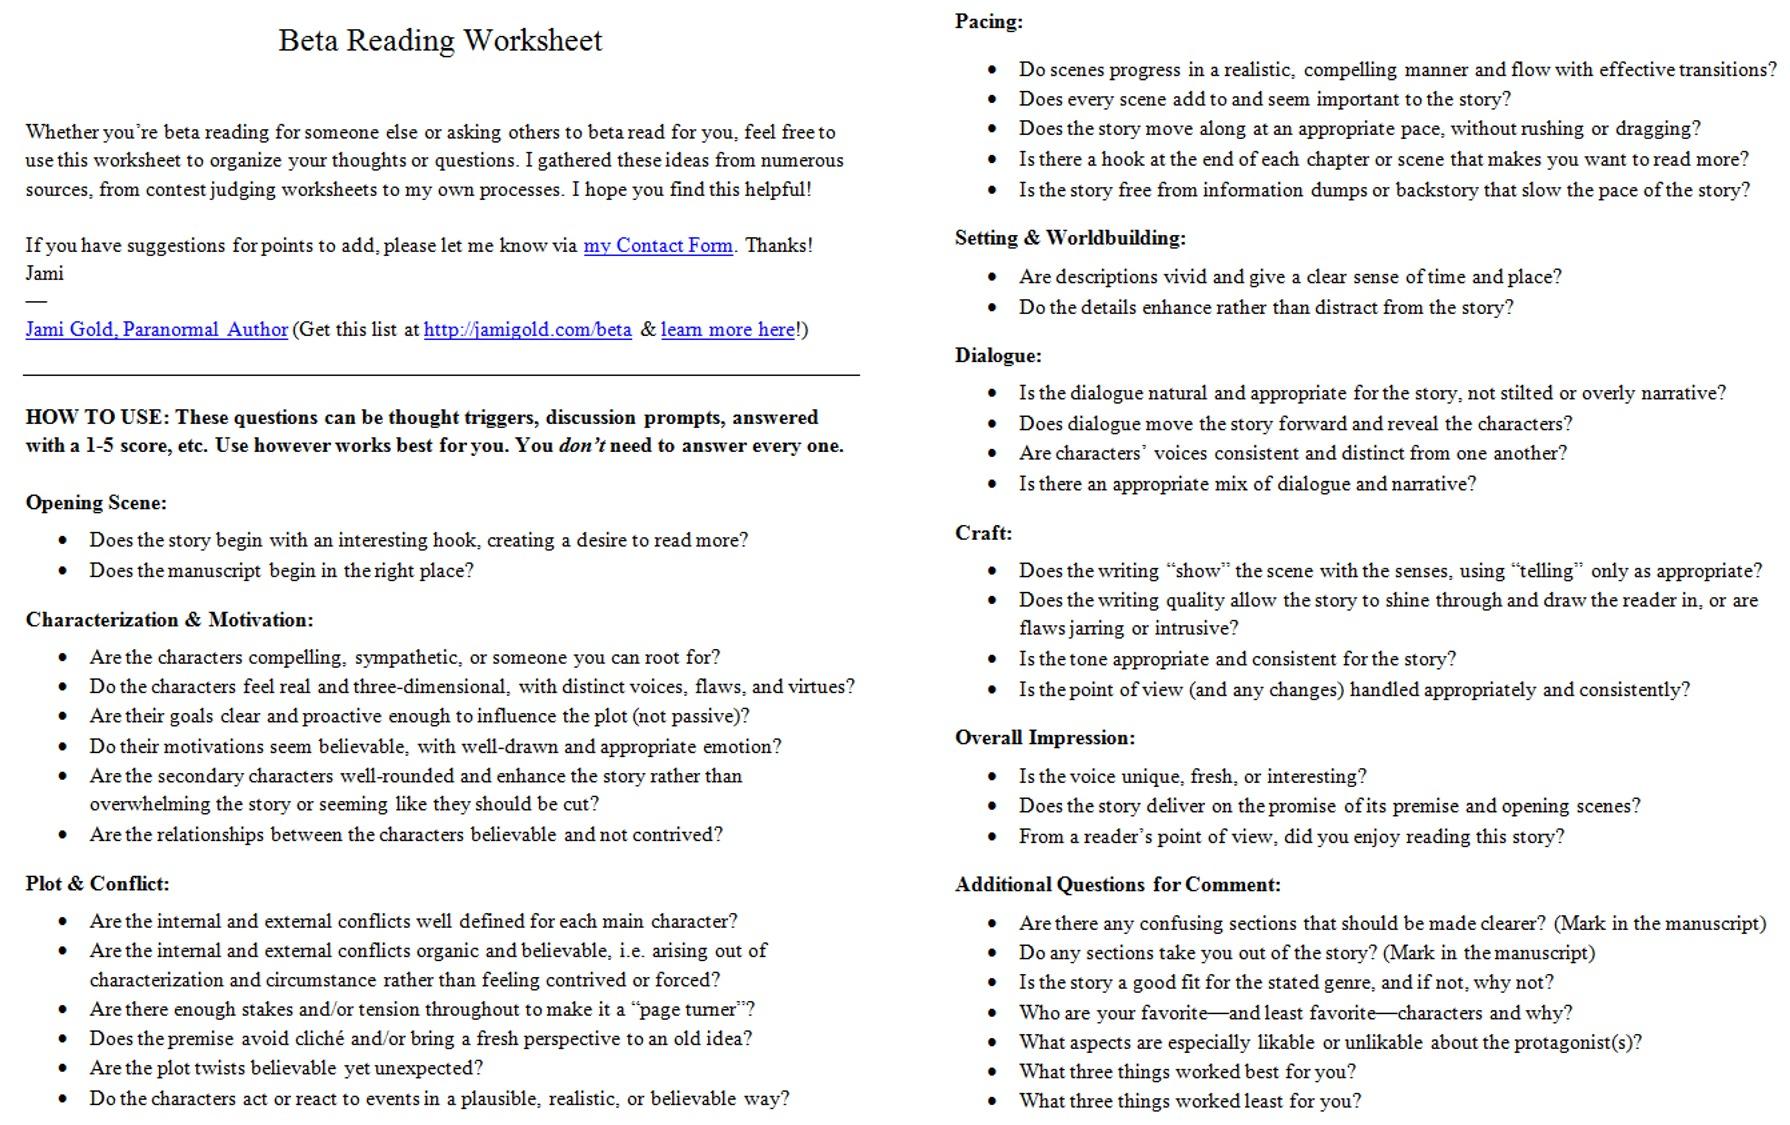 Weirdmailus  Fascinating Worksheets For Writers  Jami Gold Paranormal Author With Likable Screen Shot Of The Twopage Beta Reading Worksheet With Cute Th Grade Math Worksheet Also Reading Solubility Curves Worksheet In Addition Rd Grade Grammar Review Worksheets And Printable  Digit Addition Worksheets As Well As Bill Nye The Science Guy Energy Worksheet Additionally Erosion And Deposition Worksheet From Jamigoldcom With Weirdmailus  Likable Worksheets For Writers  Jami Gold Paranormal Author With Cute Screen Shot Of The Twopage Beta Reading Worksheet And Fascinating Th Grade Math Worksheet Also Reading Solubility Curves Worksheet In Addition Rd Grade Grammar Review Worksheets From Jamigoldcom